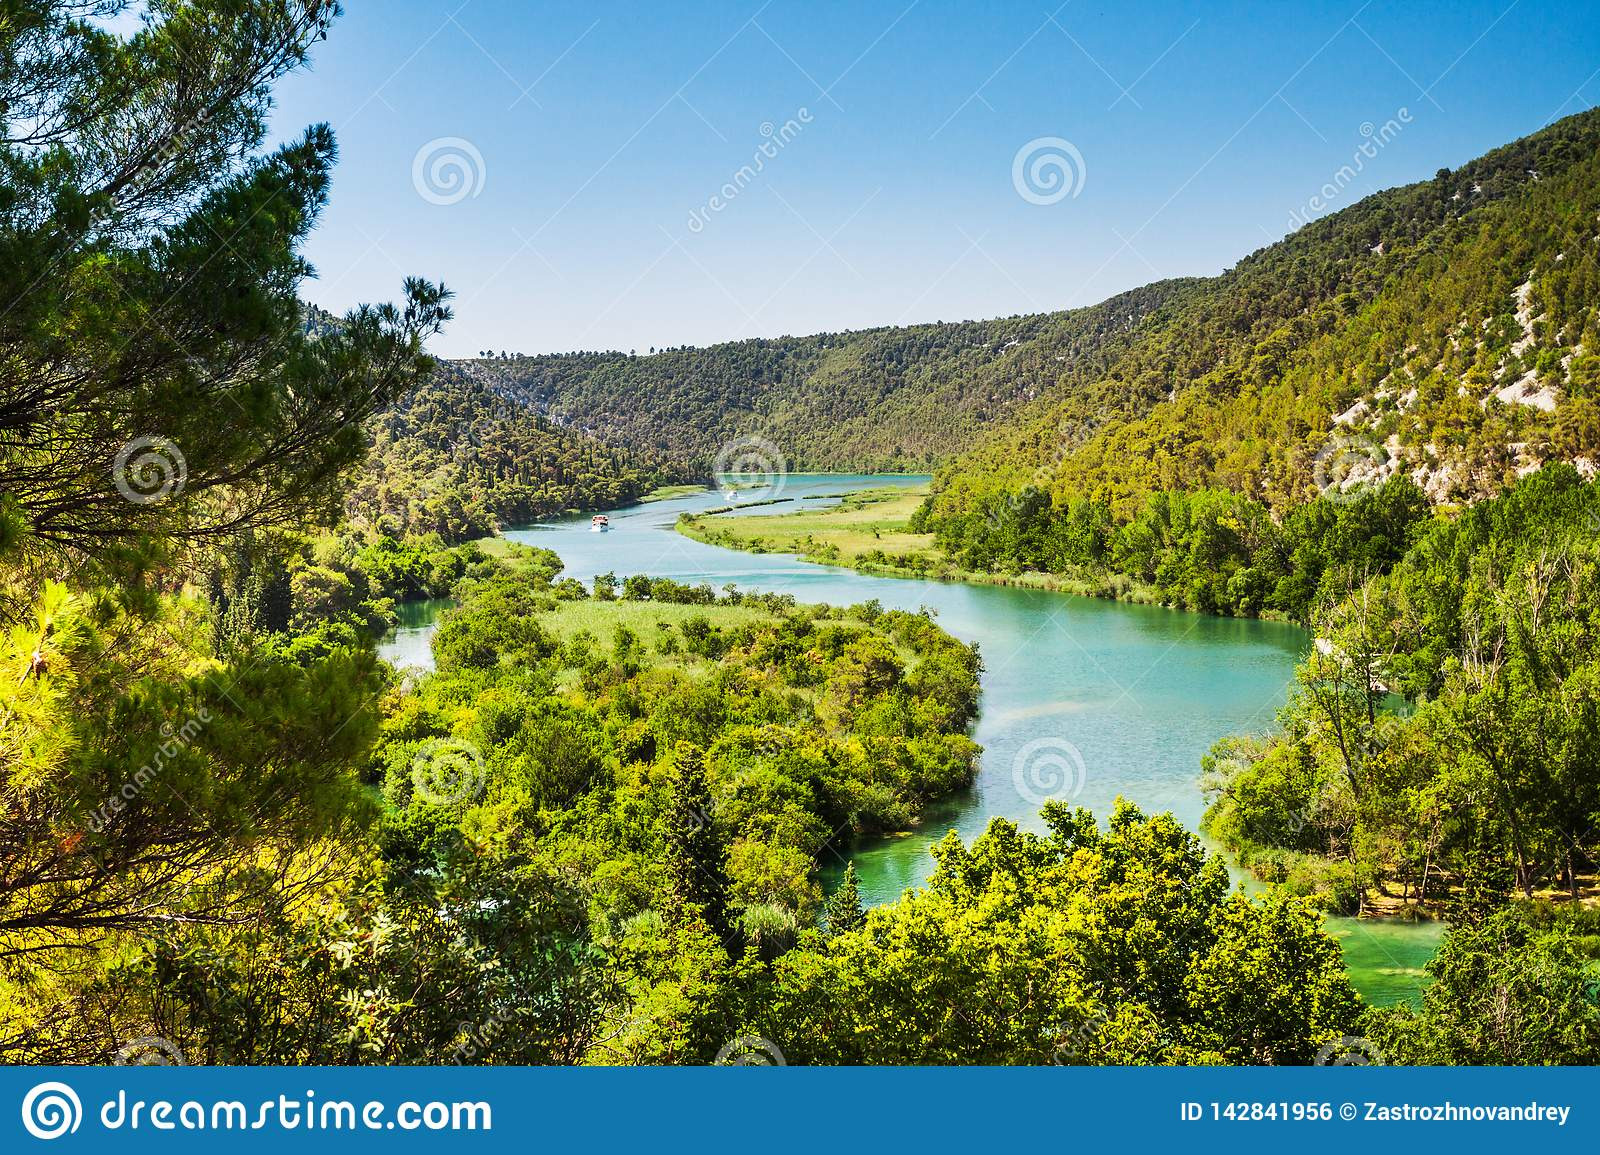 Two ships sail on the river. Around the forest and mountains. Krka, National Park, Dalmatia, Croatia